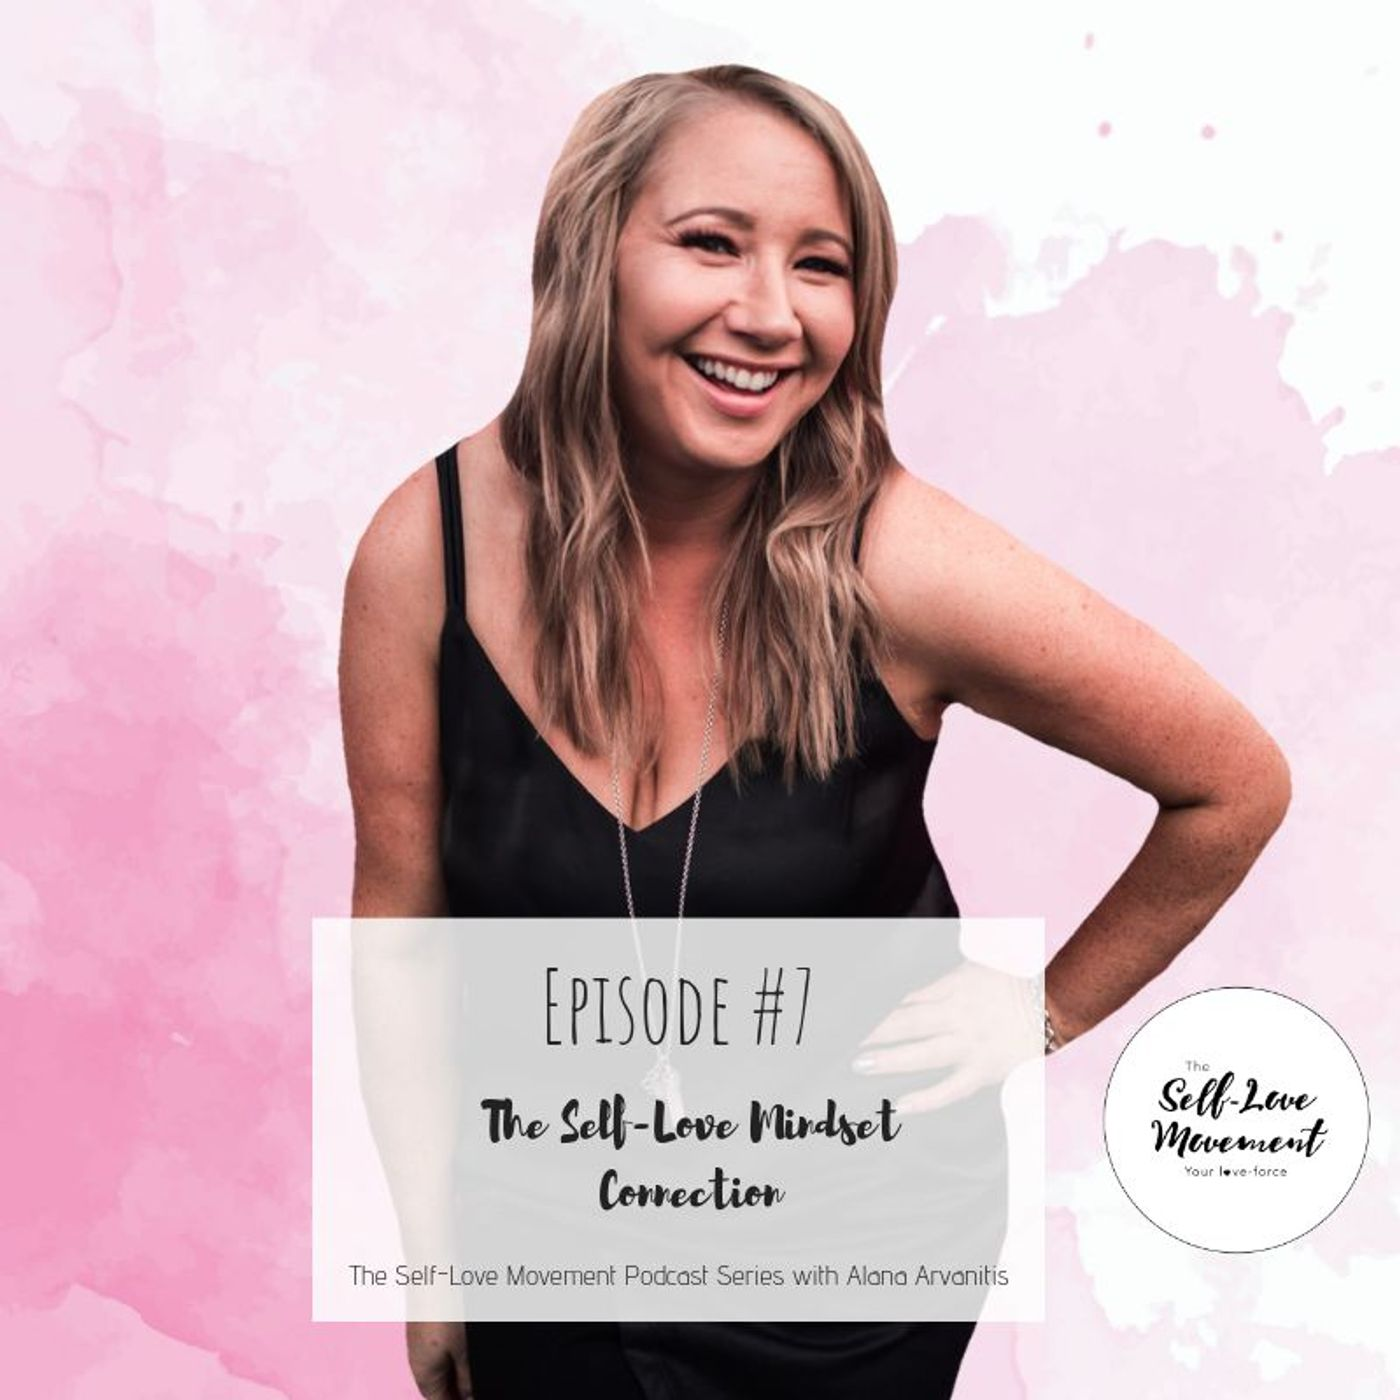 Episode #7 The Self-Love Mindset Connection With Christine Corcoran